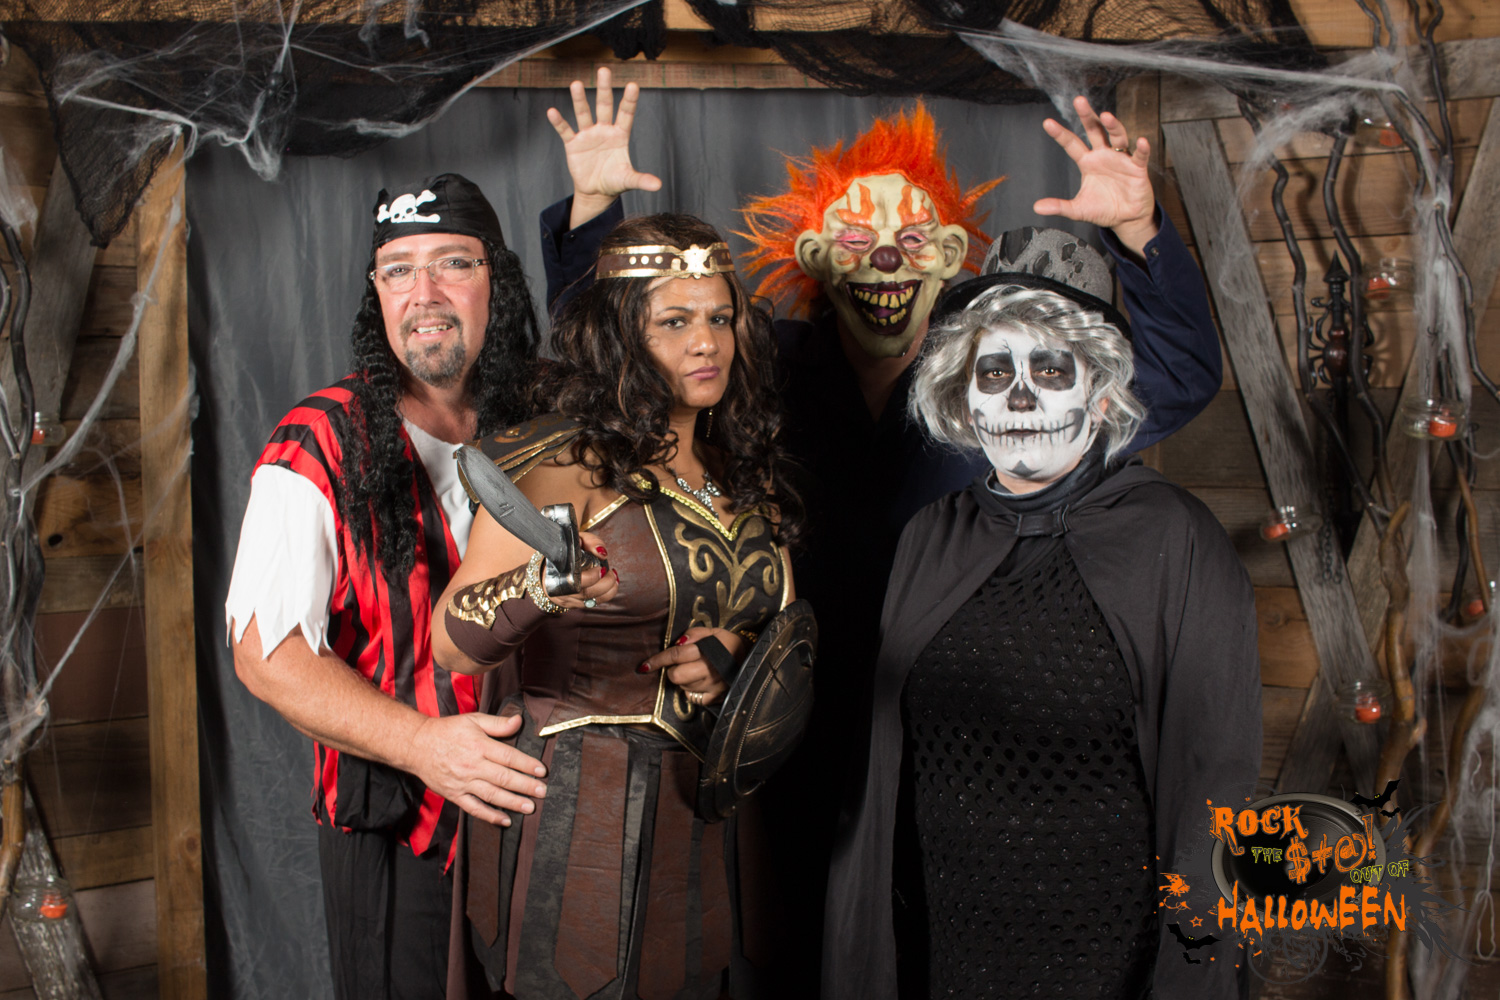 Halloween-PhotoBooth-038-6770